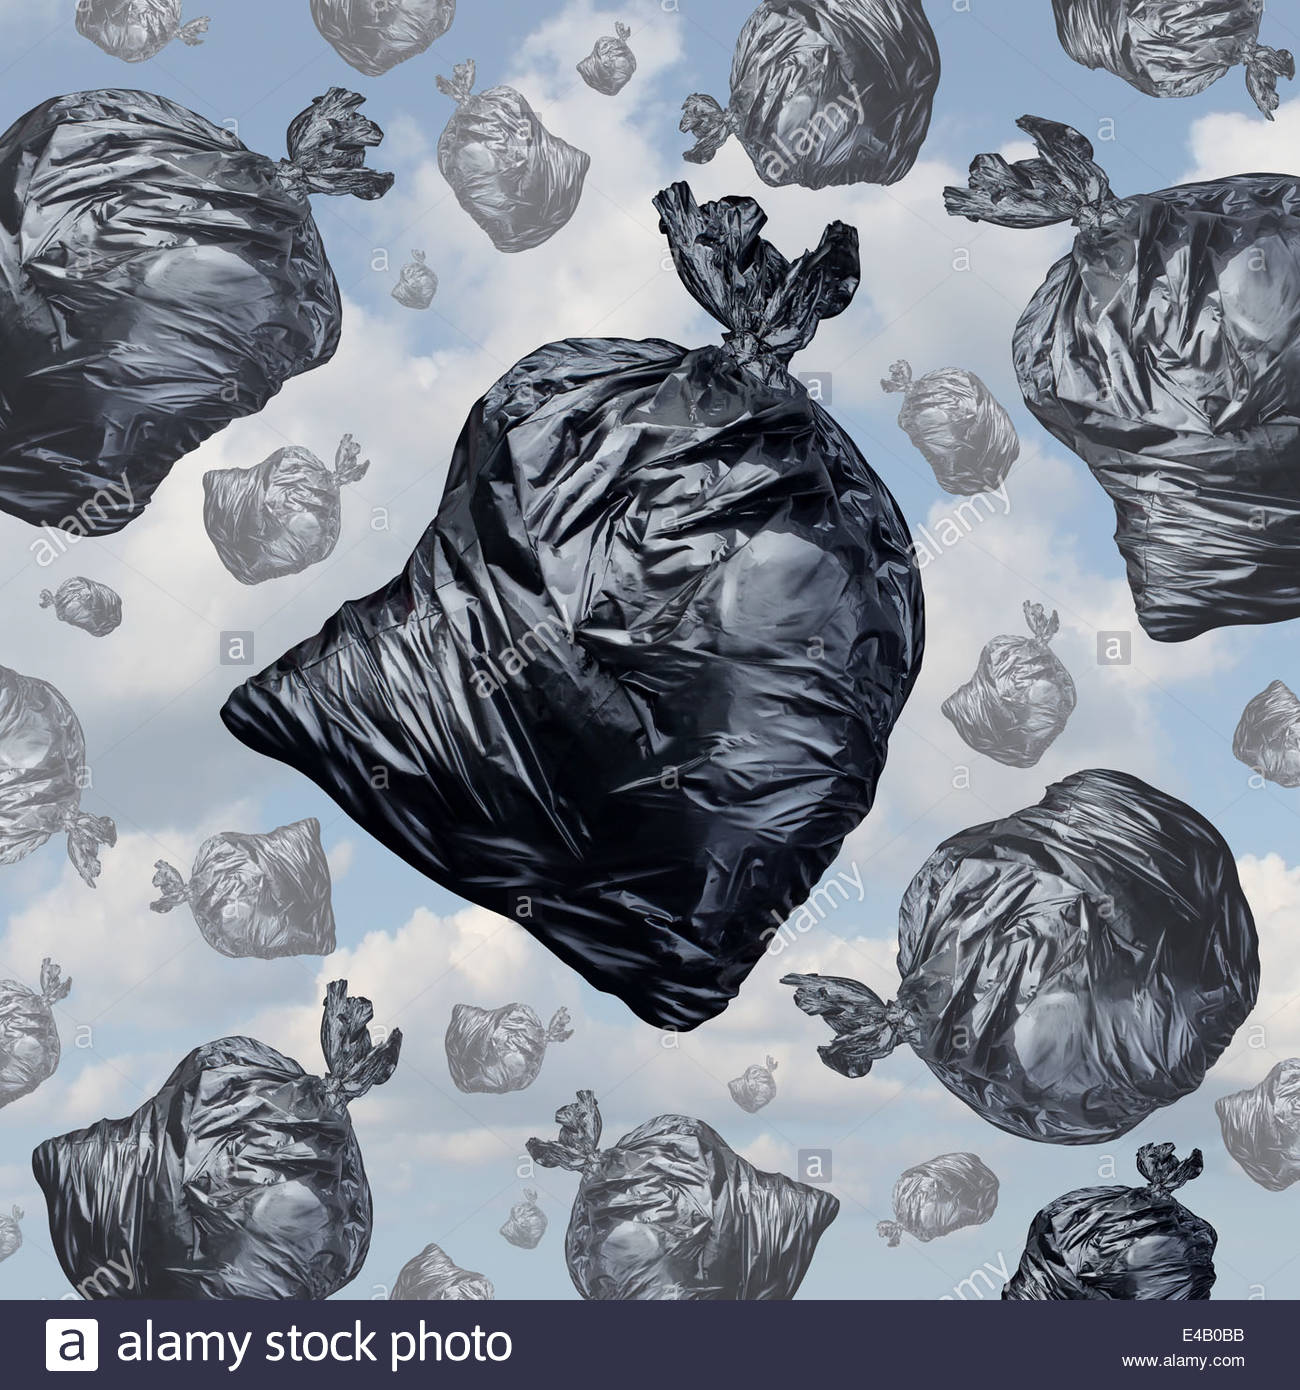 1300x1390 Garbage Concept As Black Trash Bags With An Unpleasant Smell